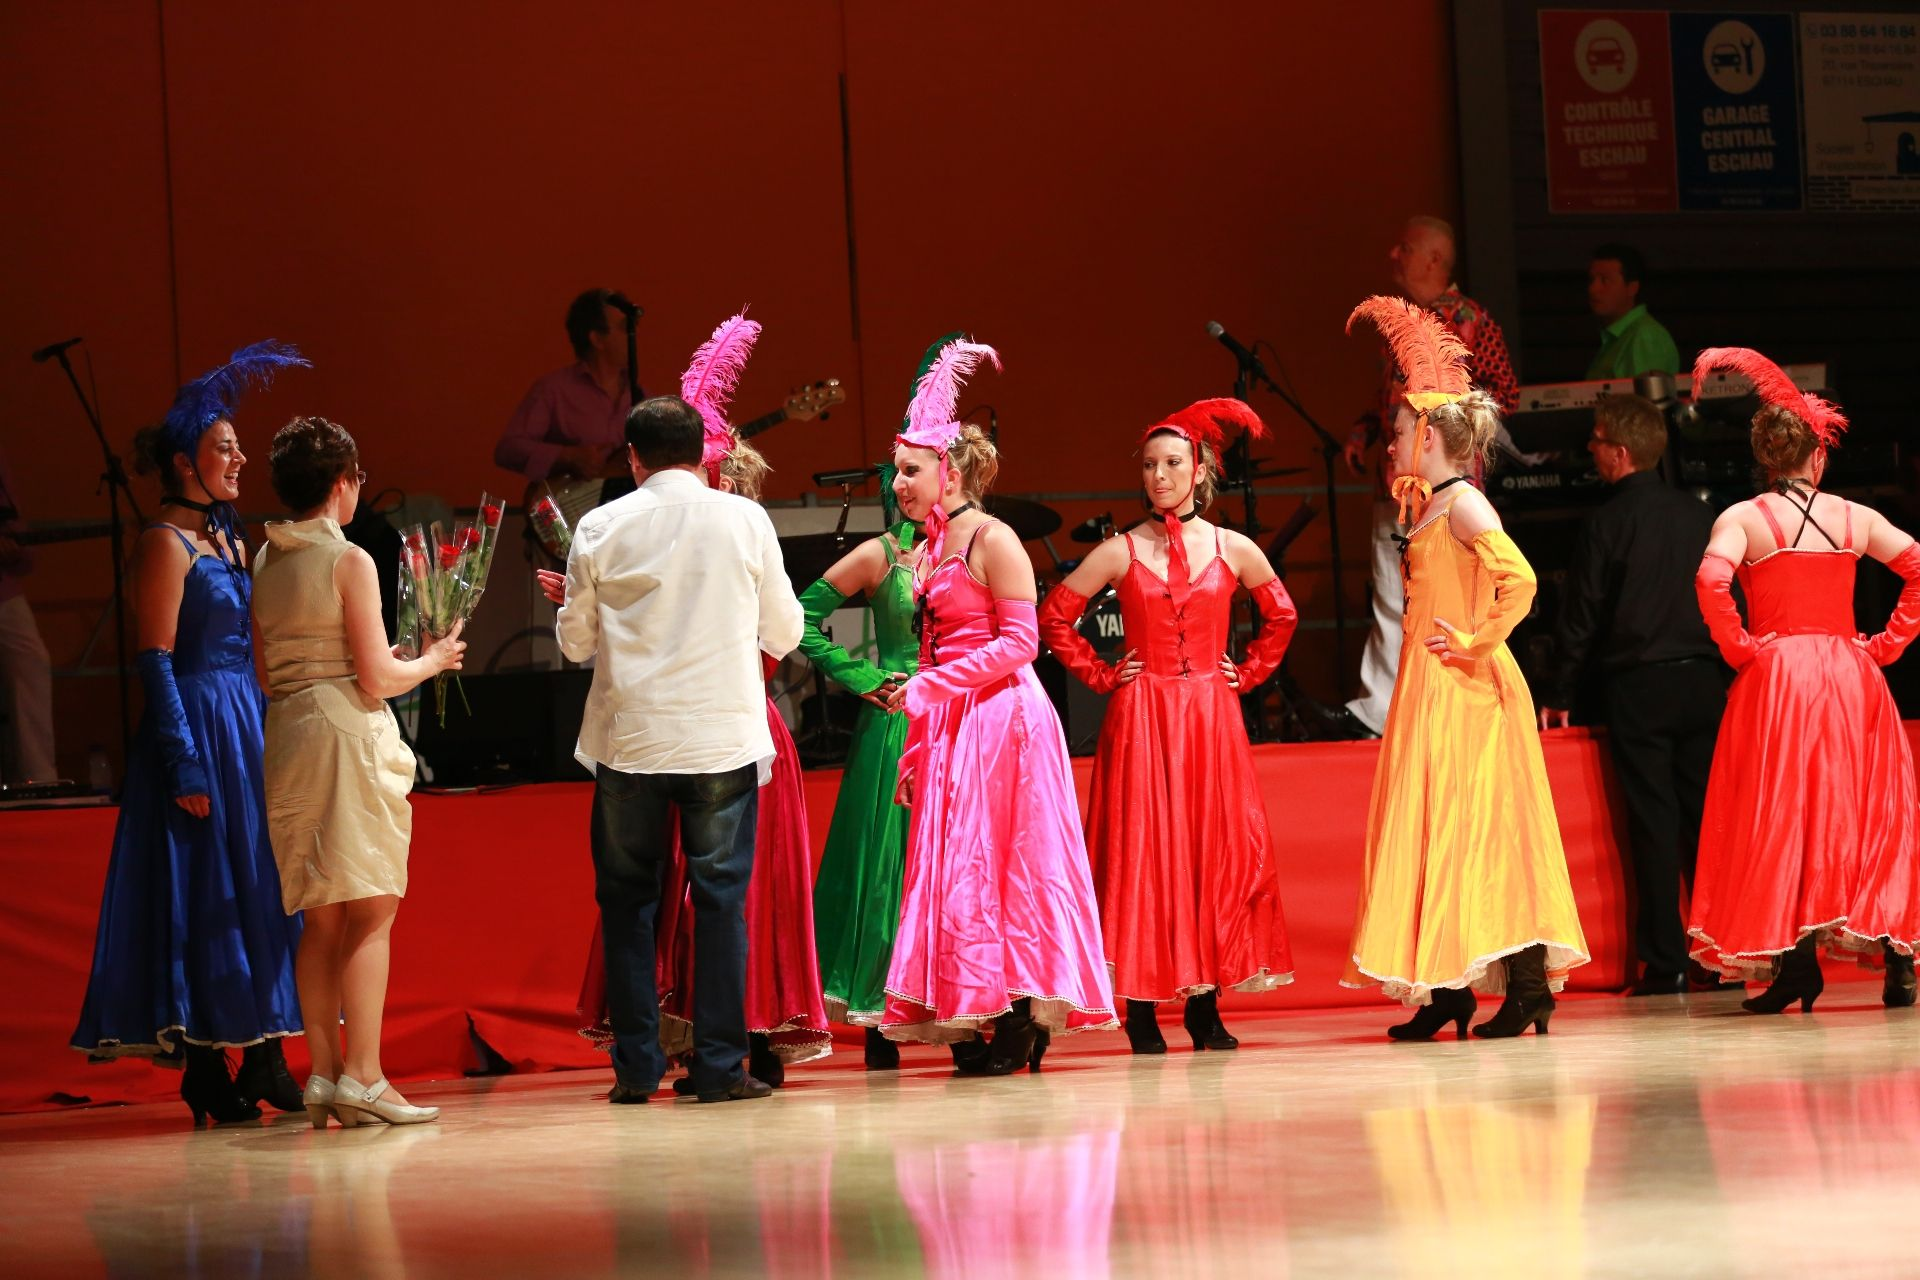 K DANSE FRENCH CANCAN (79)